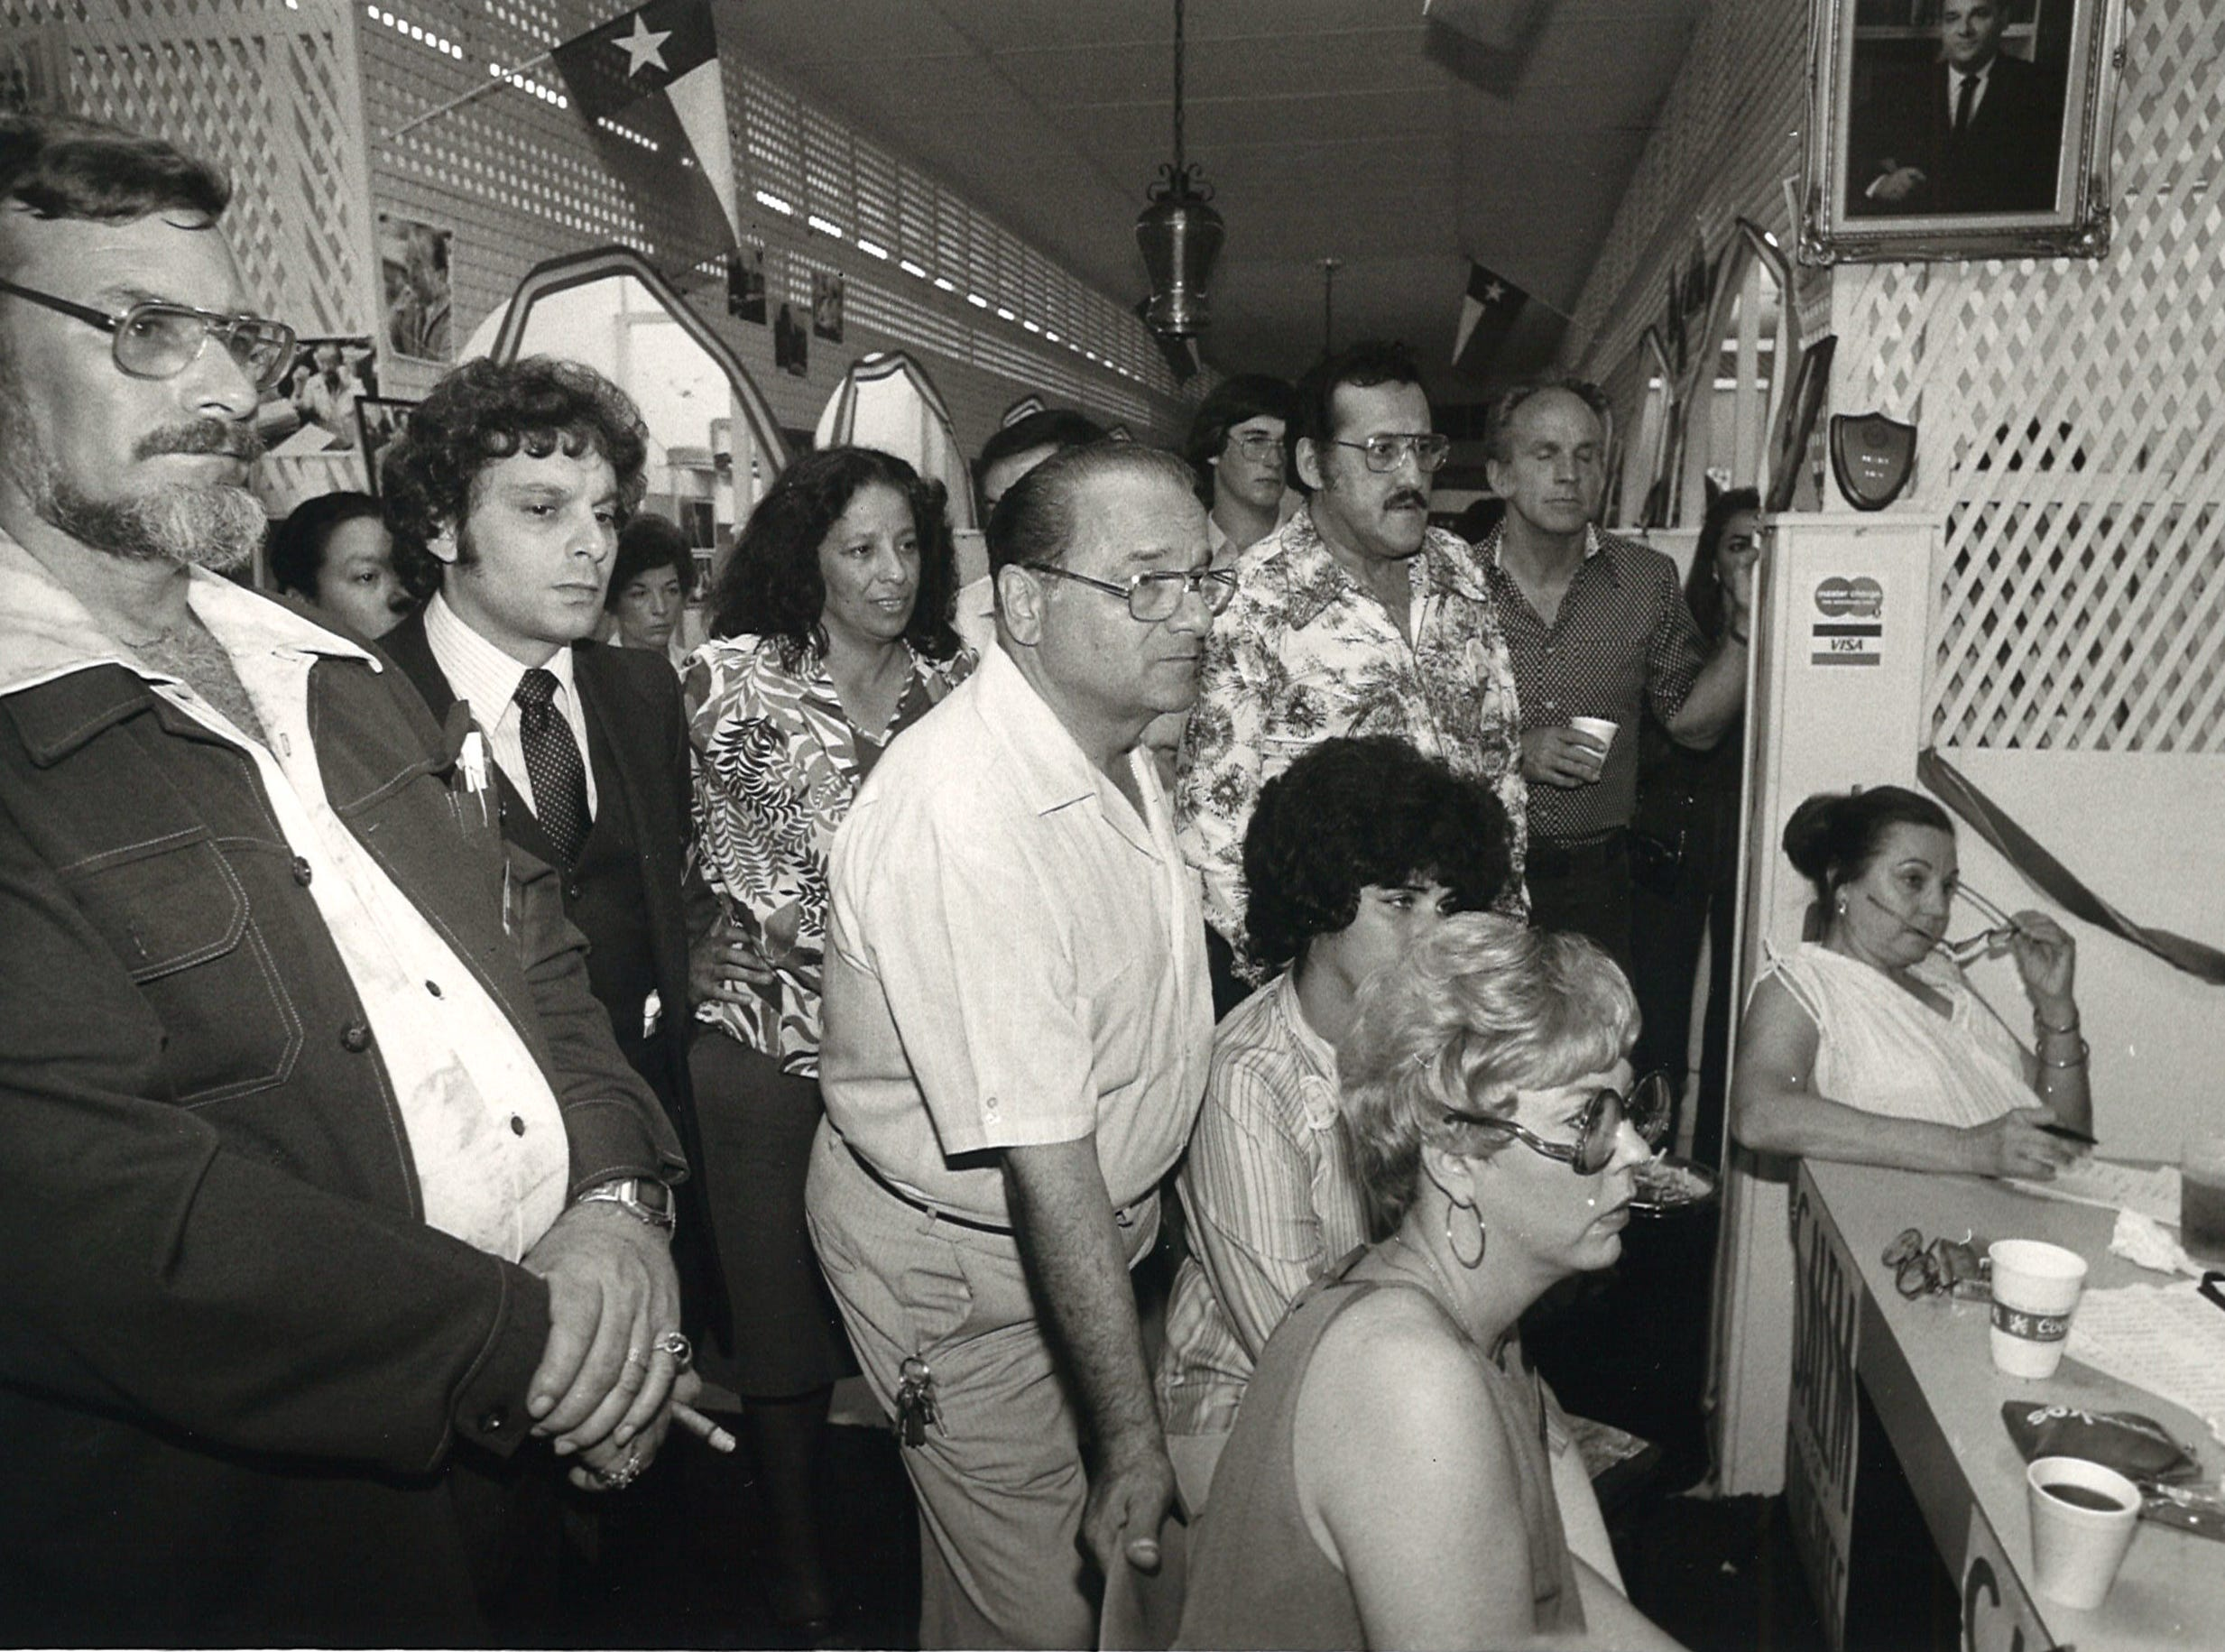 Joe Salem watches election night returns on TV at campaign headquarters with his supporters on May 3, 1980.